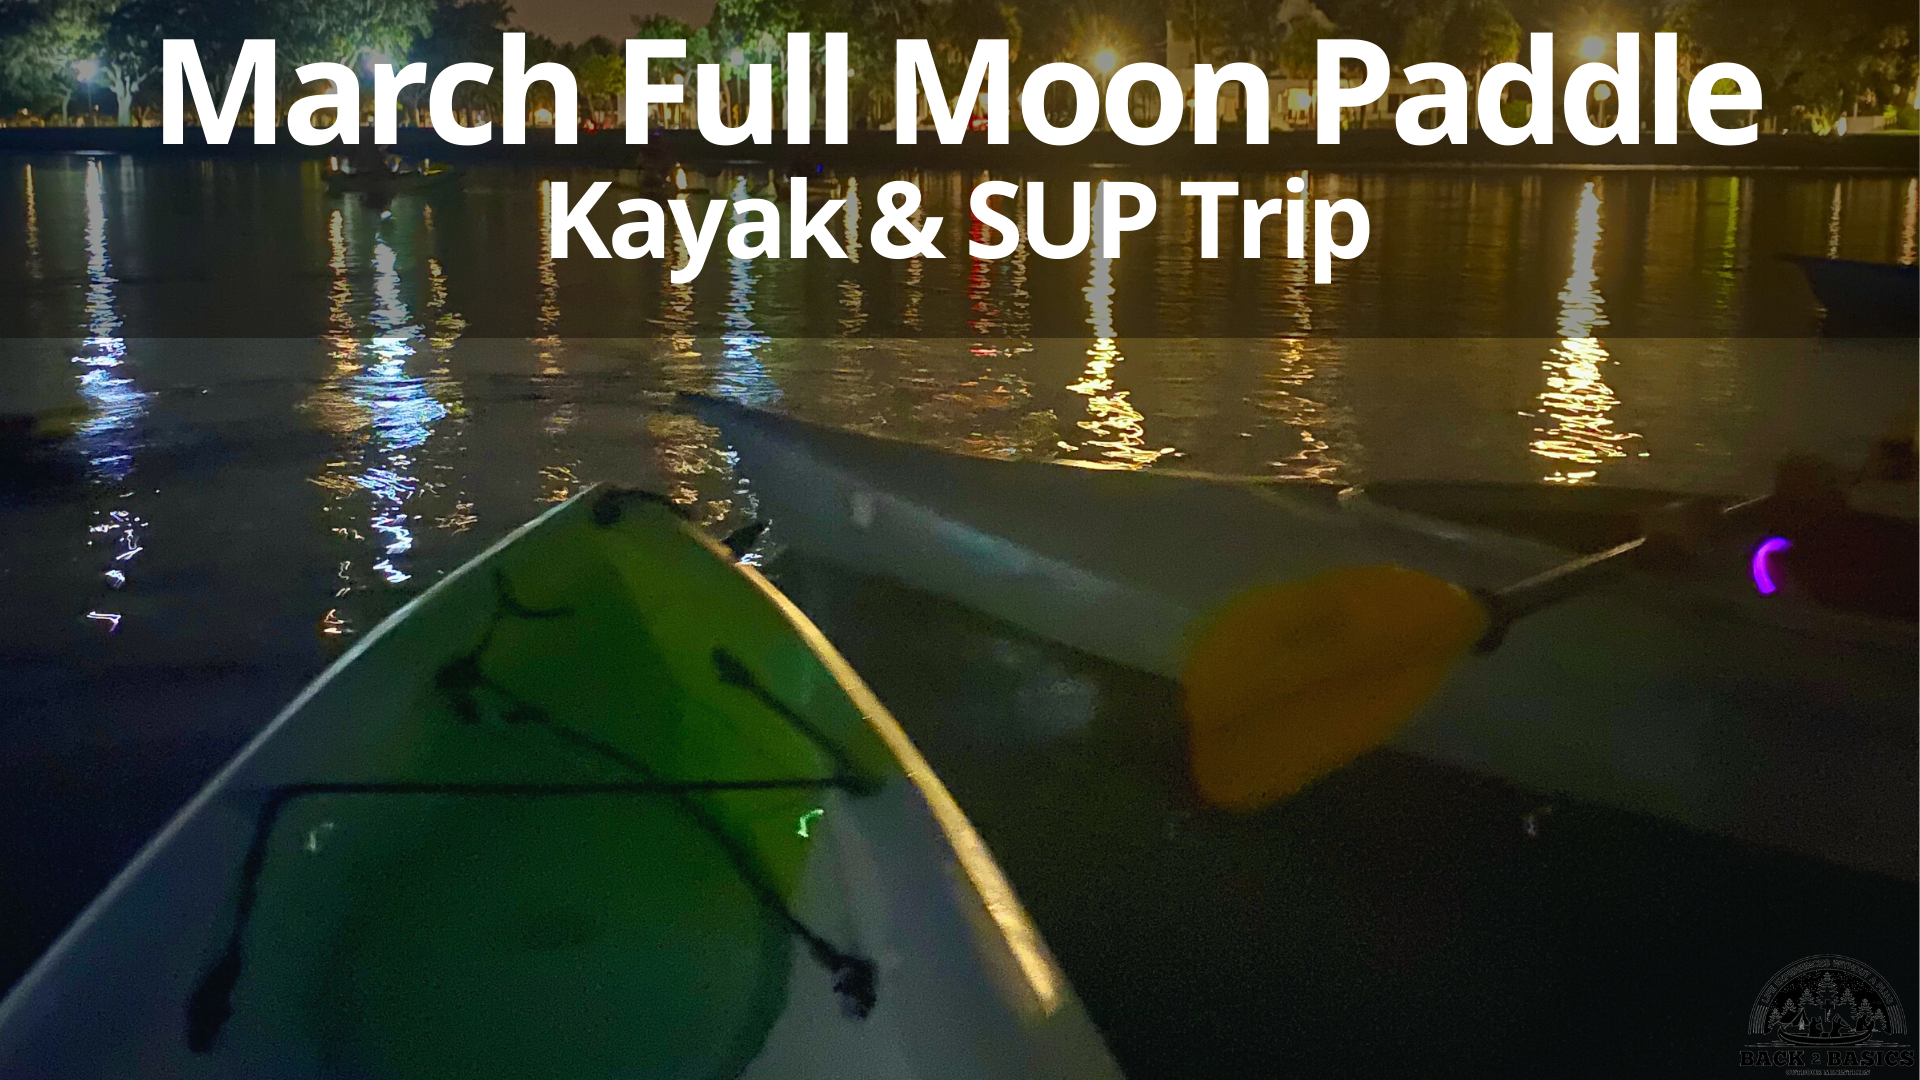 march full moon paddle, back2basics outdoor ministries